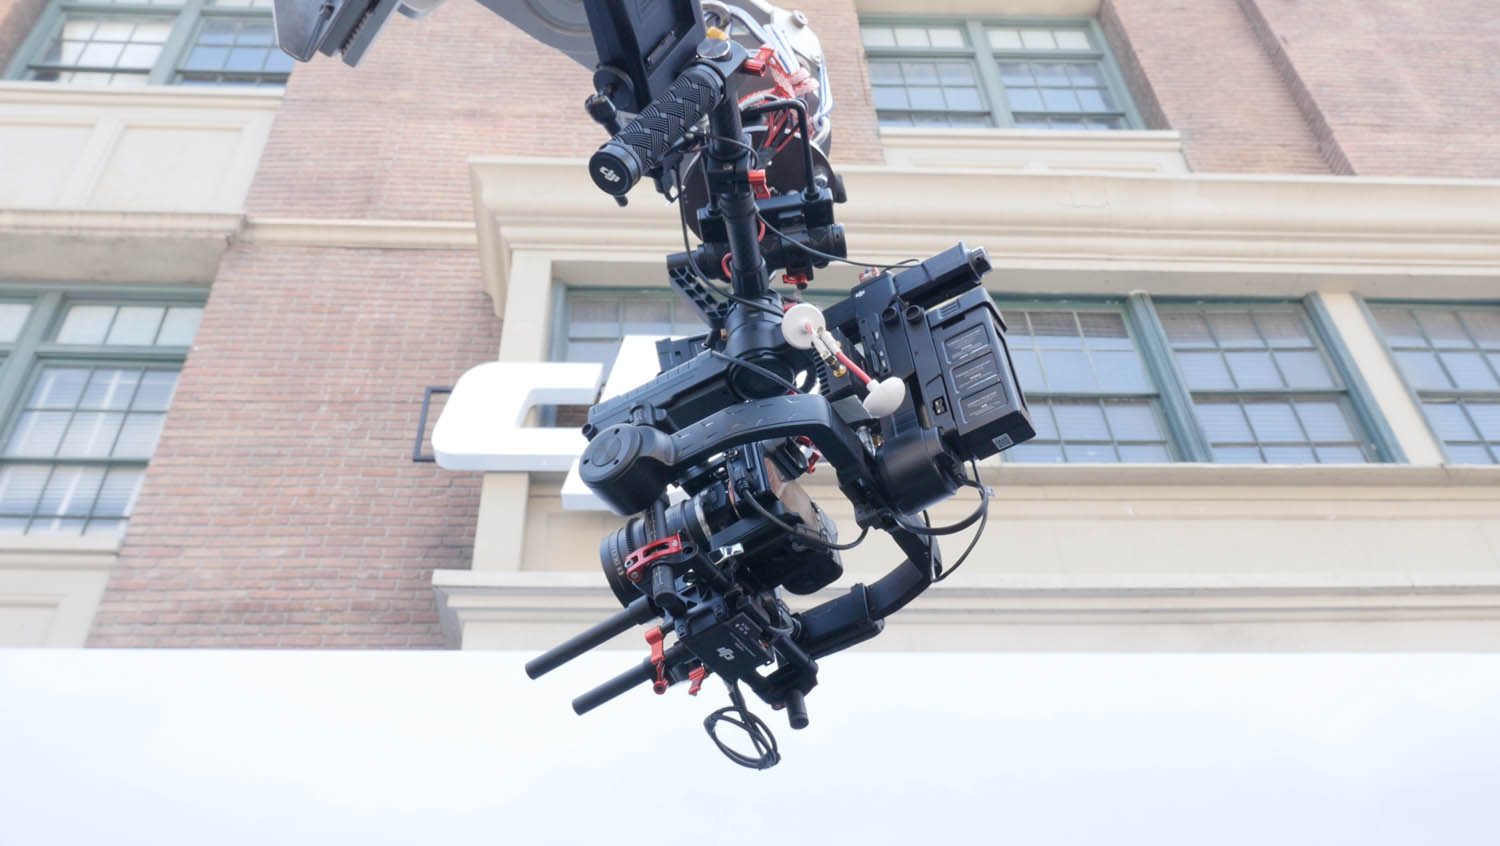 Mag 2880 holding the rig at the DJI cine gear 2016 booth